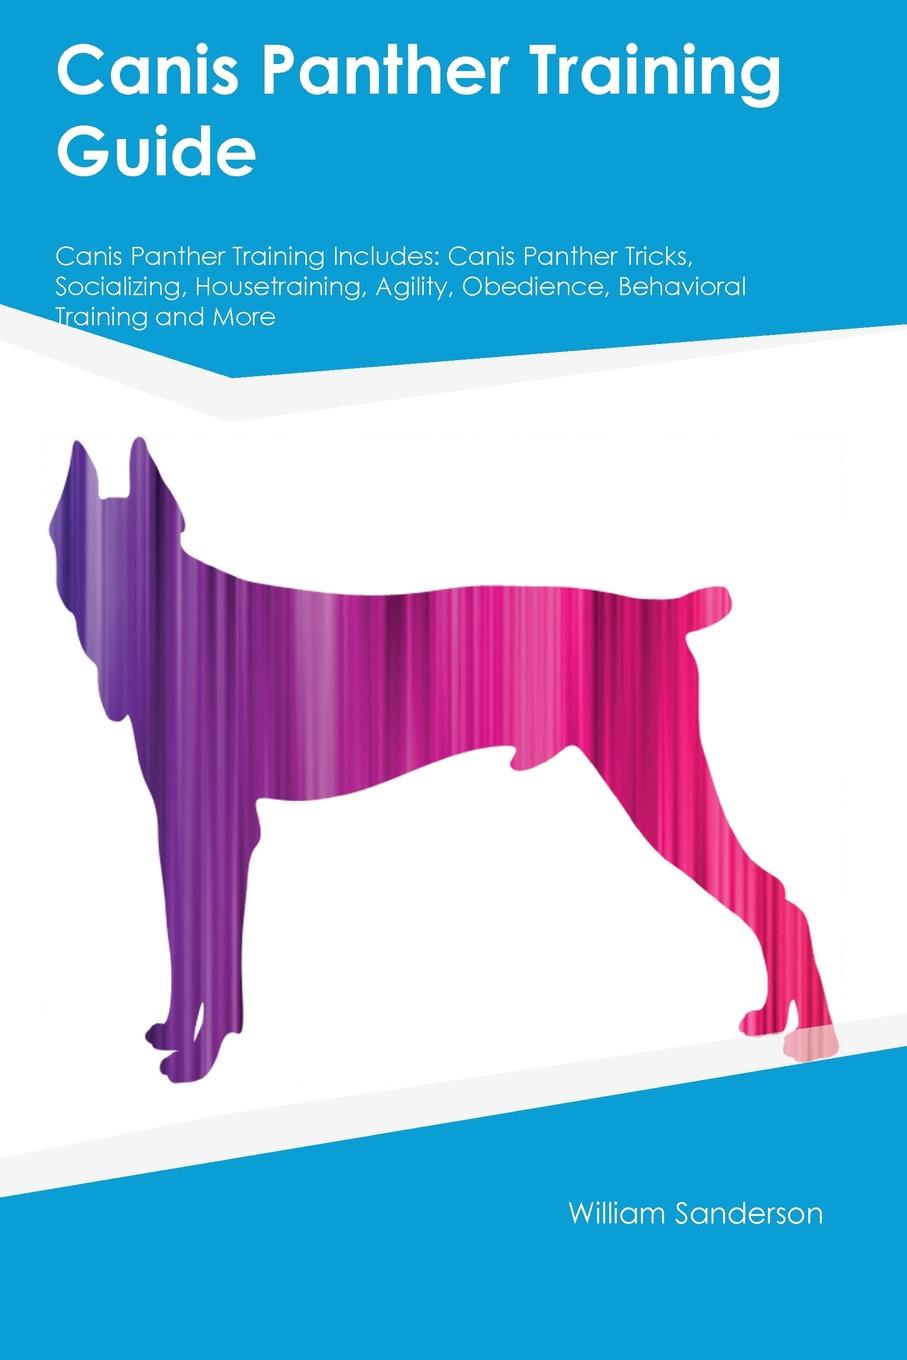 Joshua Rees Canis Panther Training Guide Canis Panther Training Includes. Canis Panther Tricks, Socializing, Housetraining, Agility, Obedience, Behavioral Training and More цена и фото